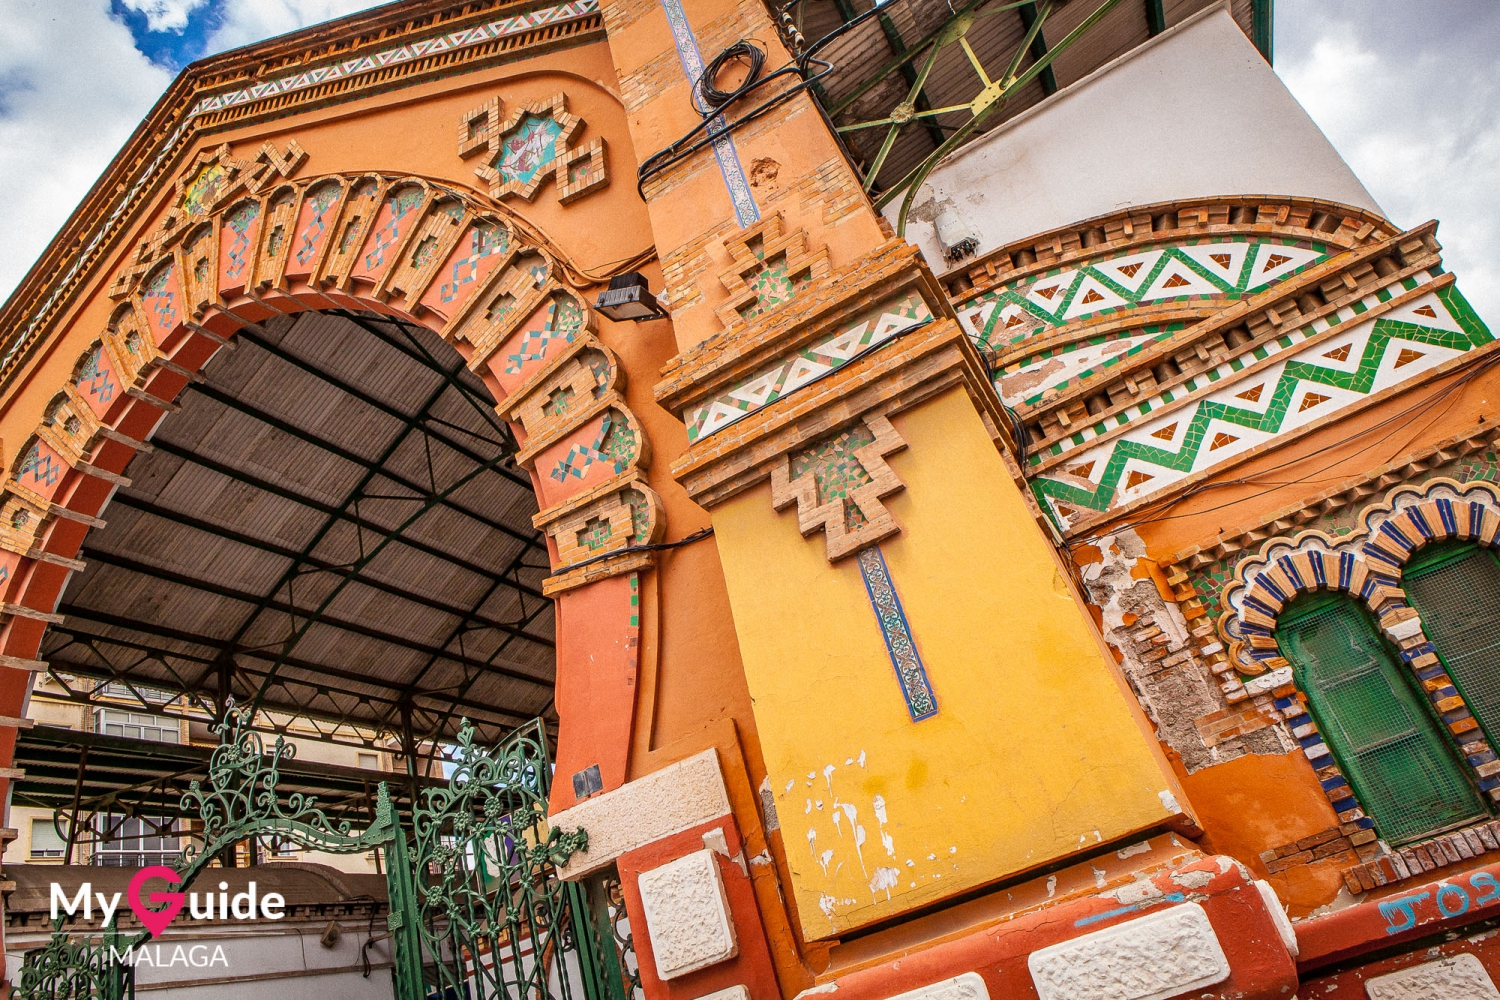 Secret architectural gems of Málaga - the Salamanca market